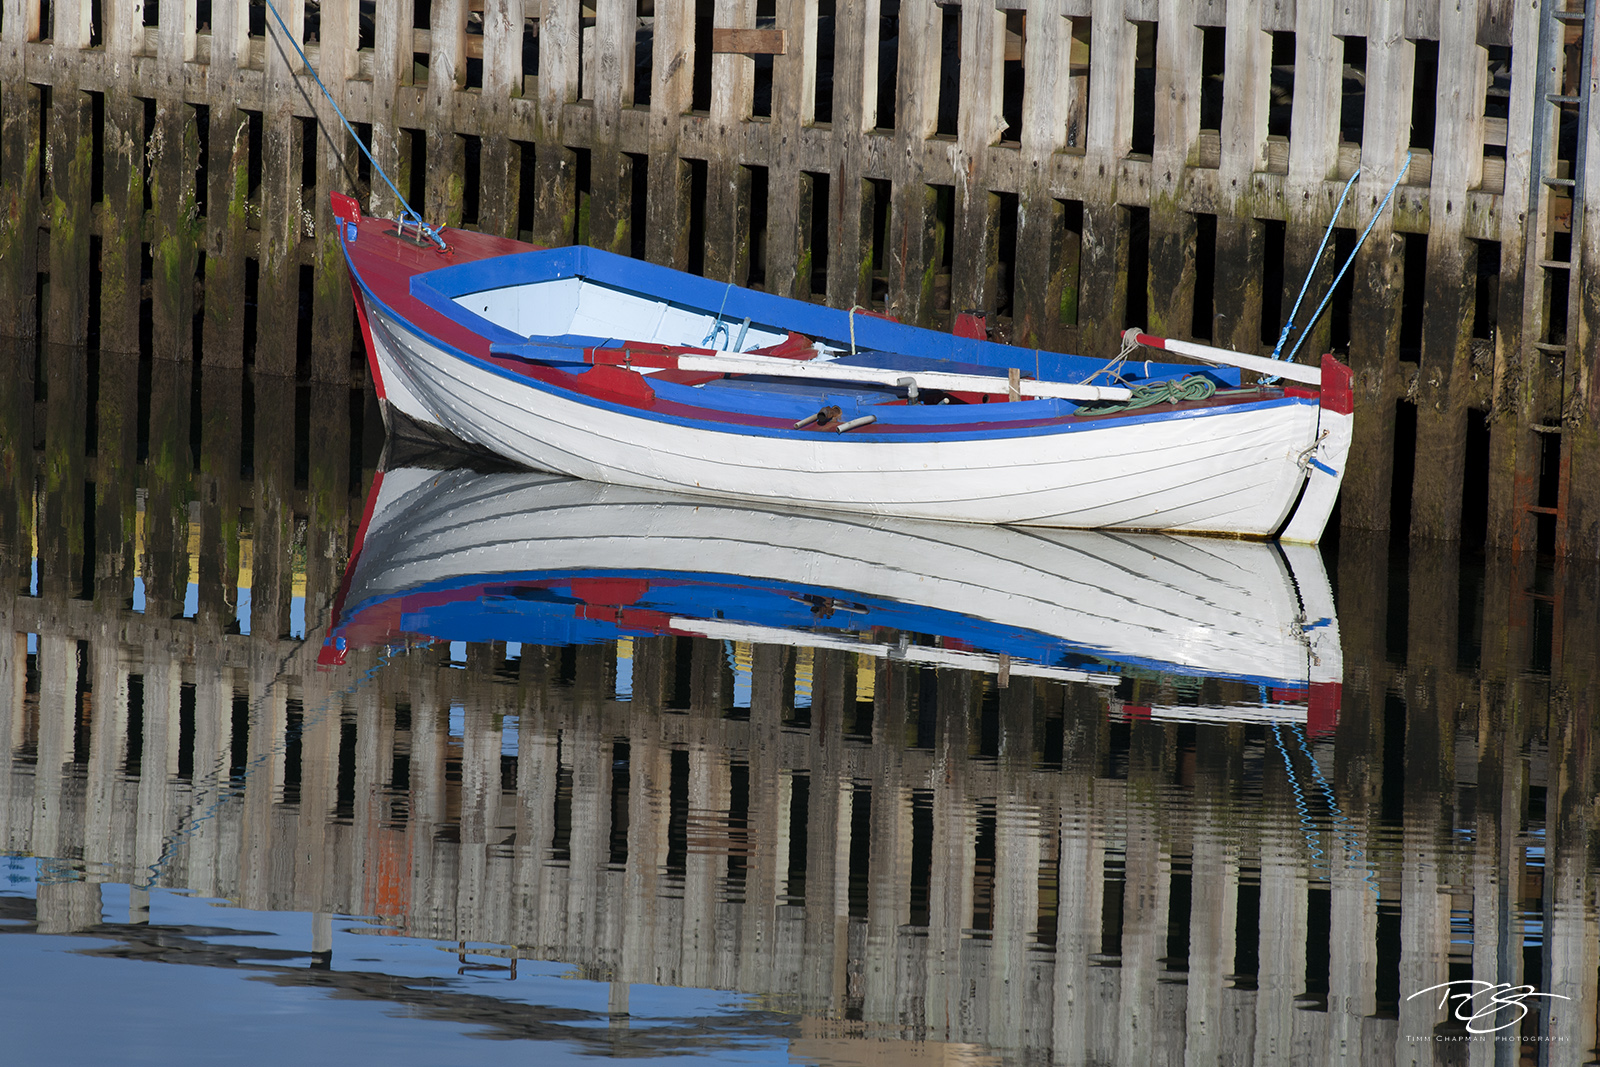 skiff, boat, dinghy, lifeboat, oars, paddles, reflection,  rowboat, photo